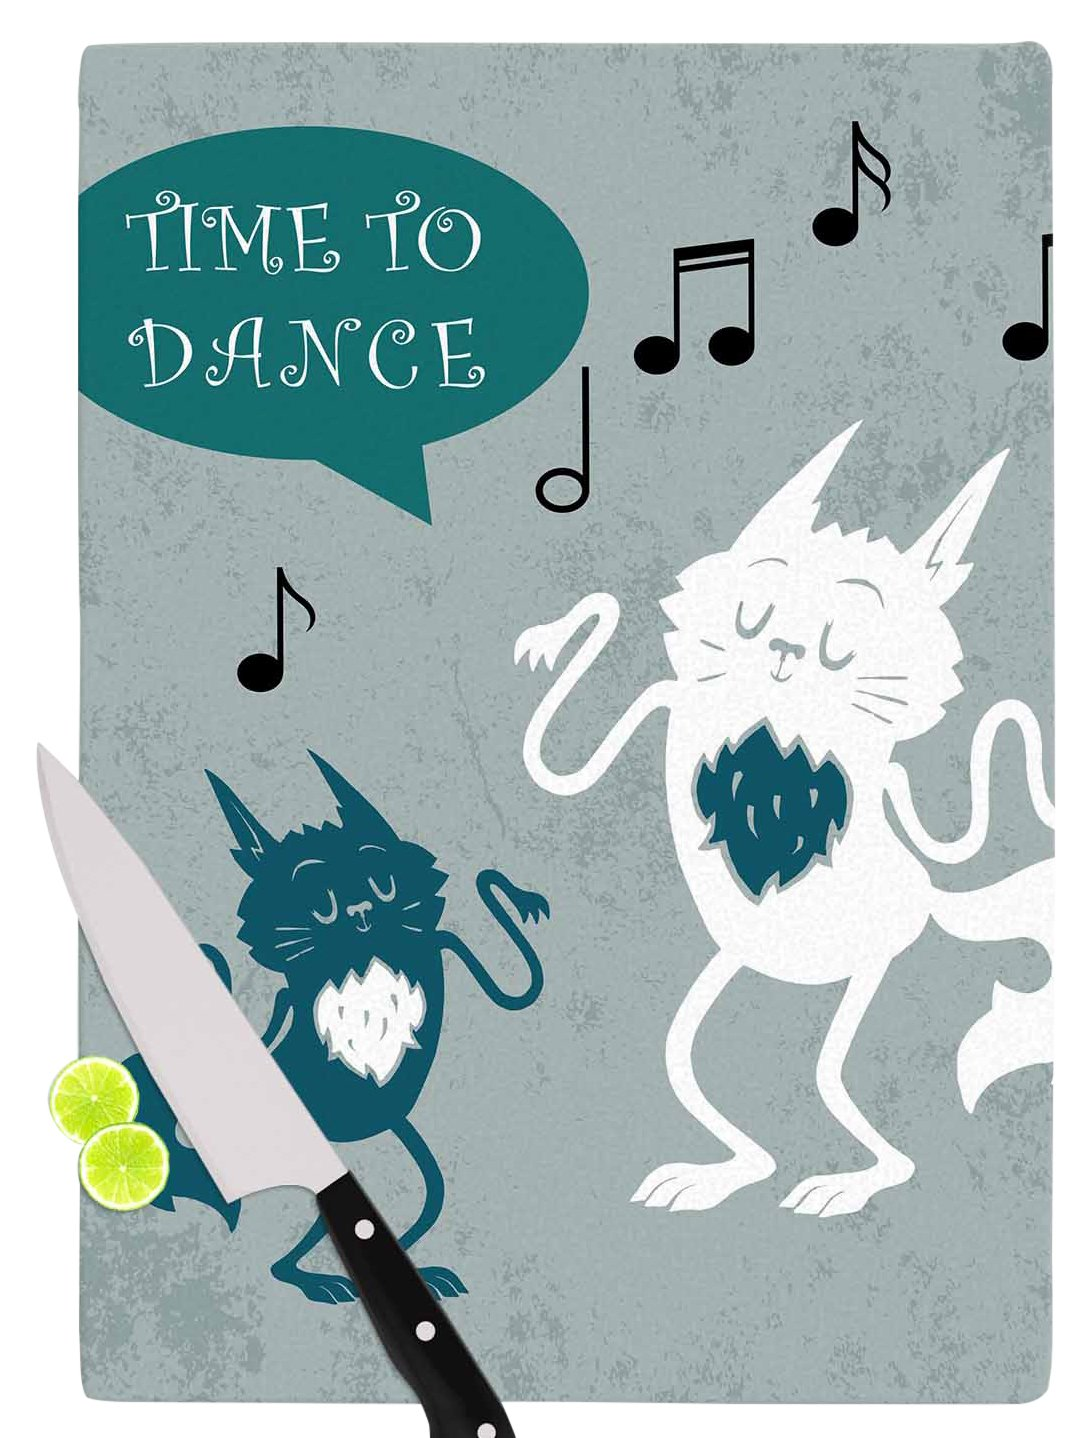 KESS InHouse Anya Volk ''Time To Dance'' Green White Cutting Board, 11.5 x 15.75'', Multicolor